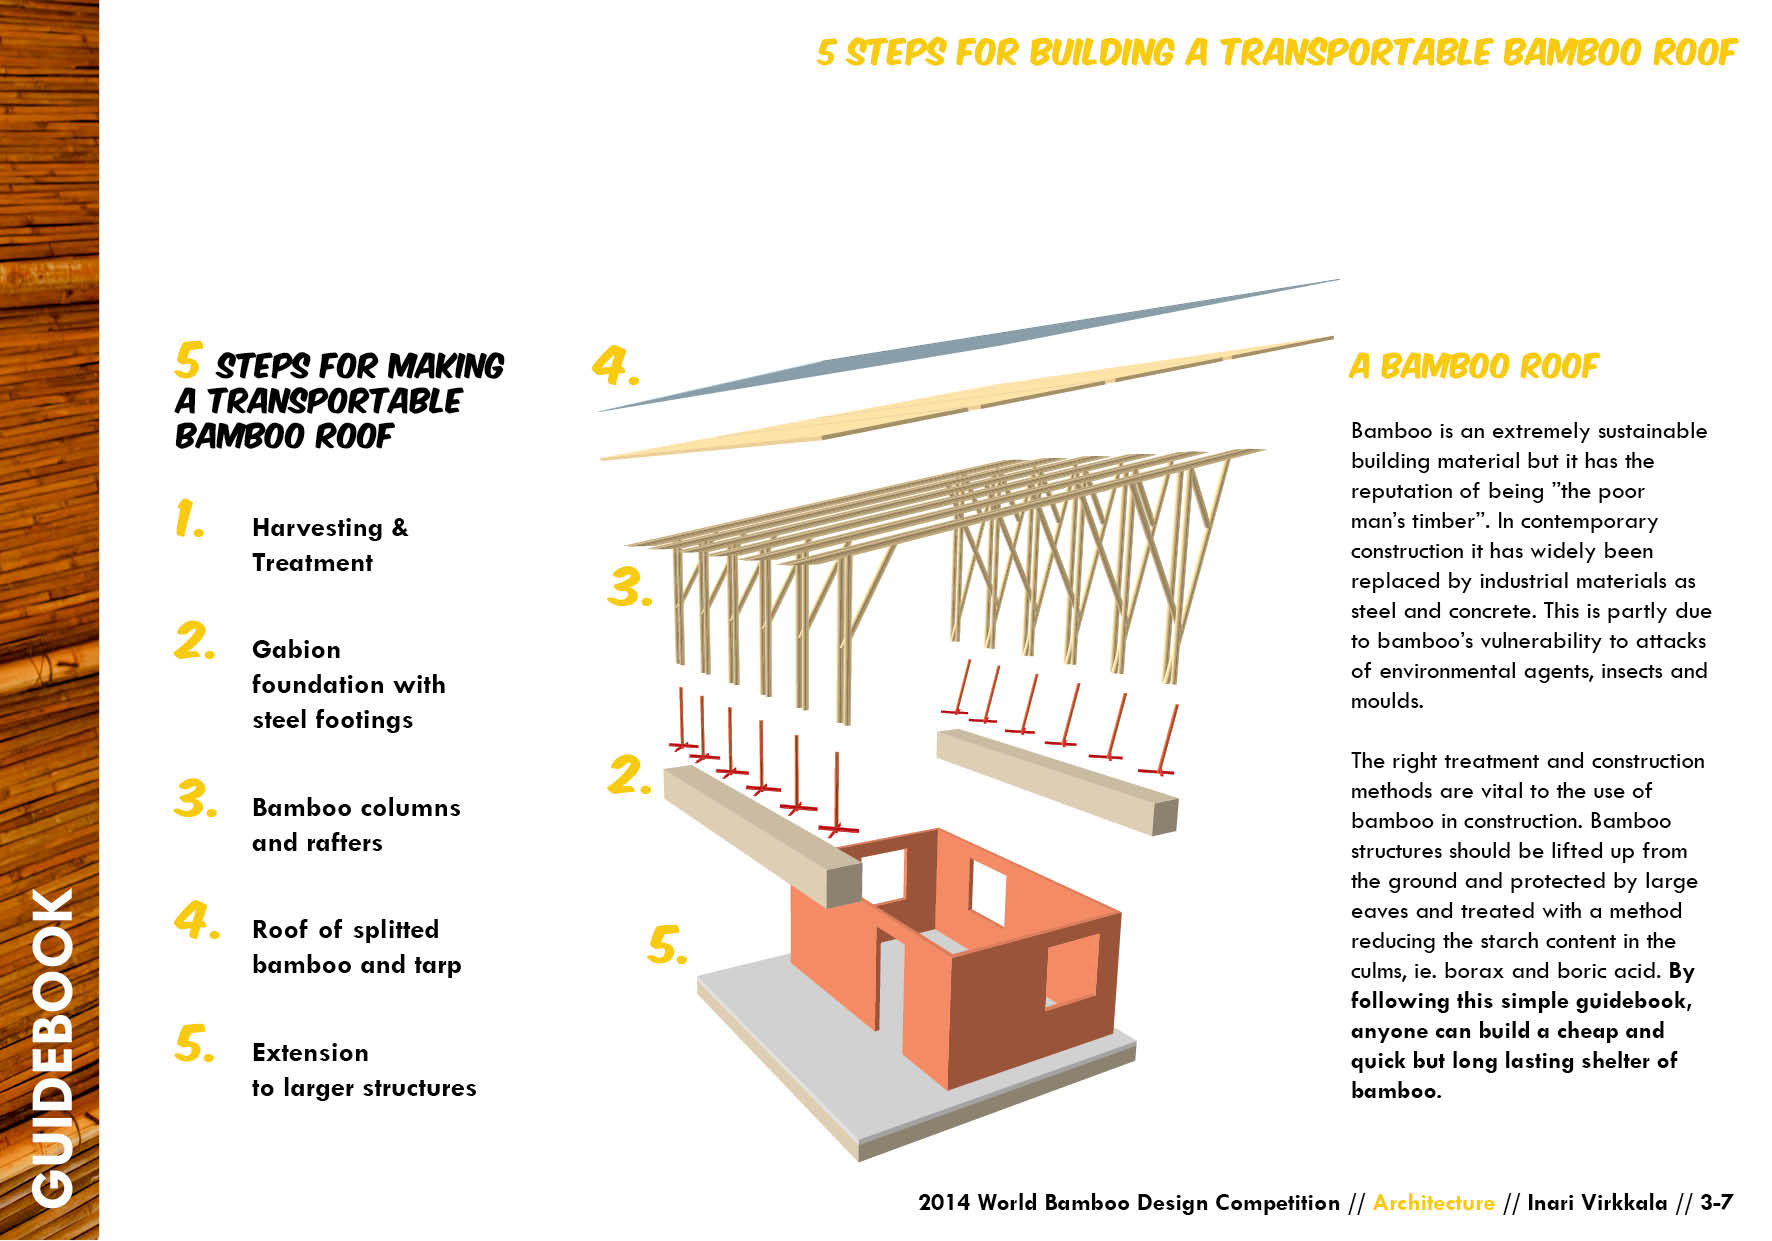 WBDC2014 GUIDE Transportable roof 20153.jpg